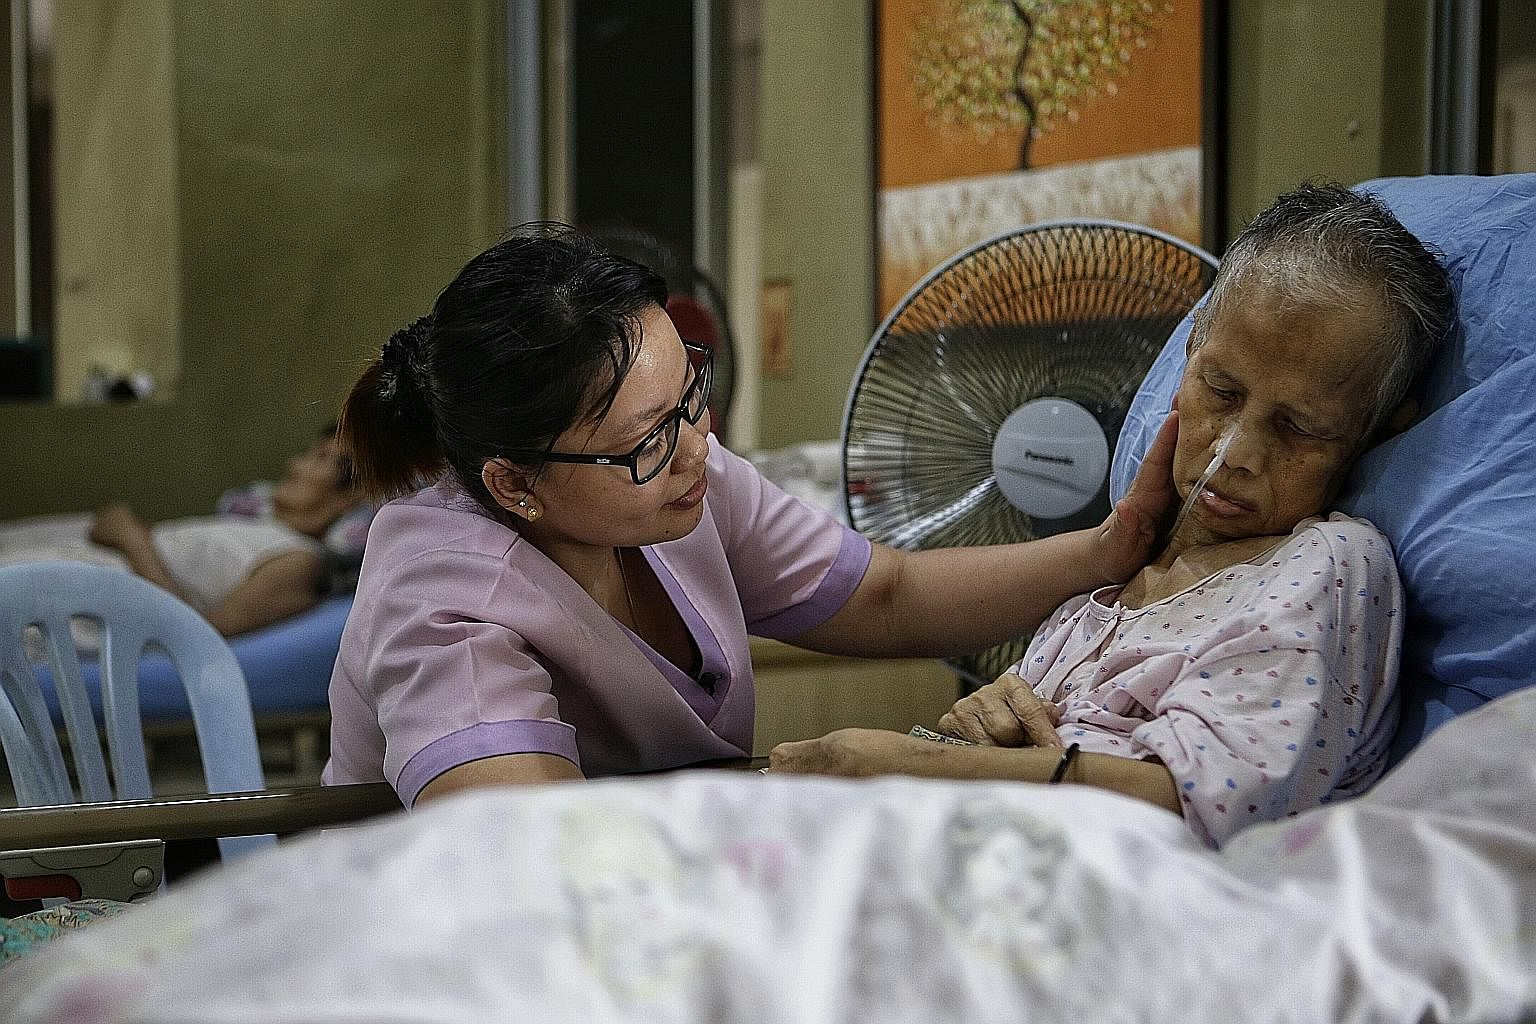 Senior nurse Liew Seenah, 30, consoling 69-year-old Madam Pungut Jumadi at Green Acres Nursing Home (below) in Johor Baru, about 20 minutes' drive from the Causeway. The owner of the home, Mr Yeo Kok Leong, is hoping to find Madam Pungut's family in